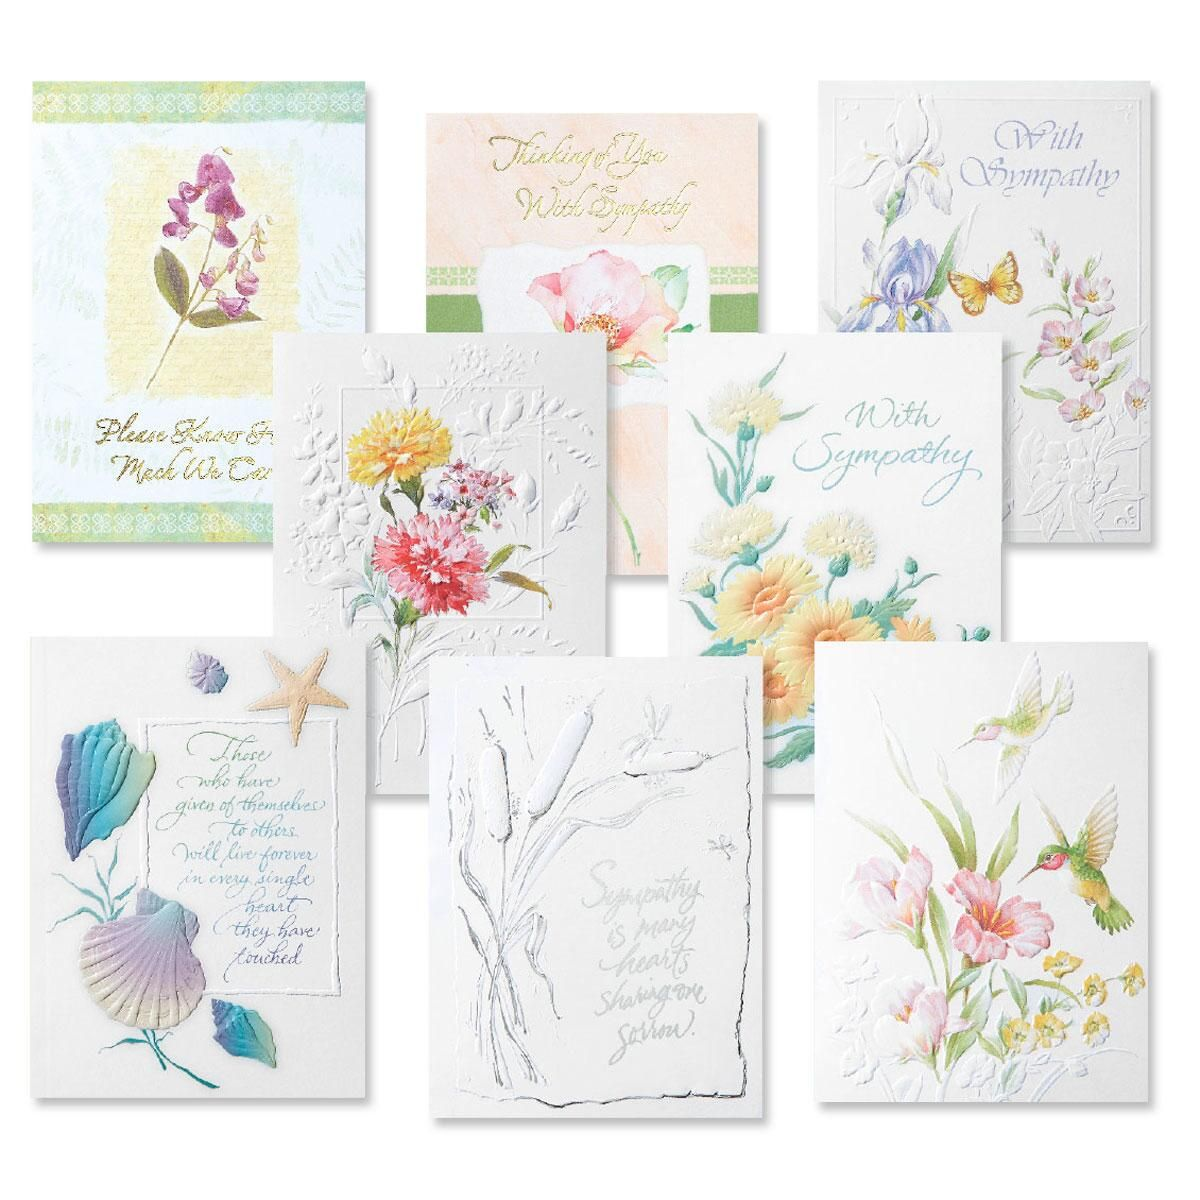 Deluxe Sympathy Greeting Card Value Pack